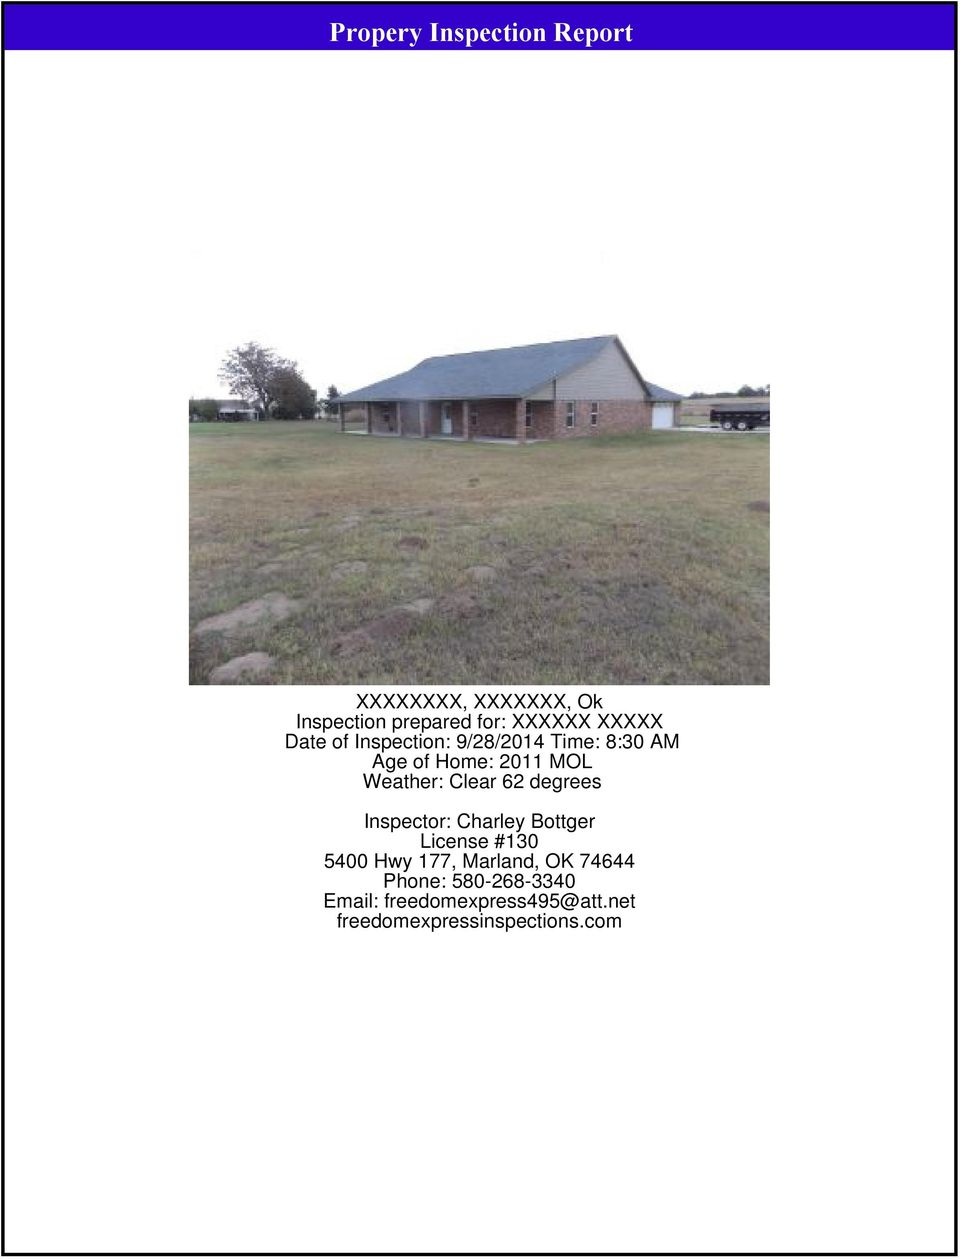 62 degrees Inspector: License #130 5400 Hwy 177, Marland, OK 74644 Phone: